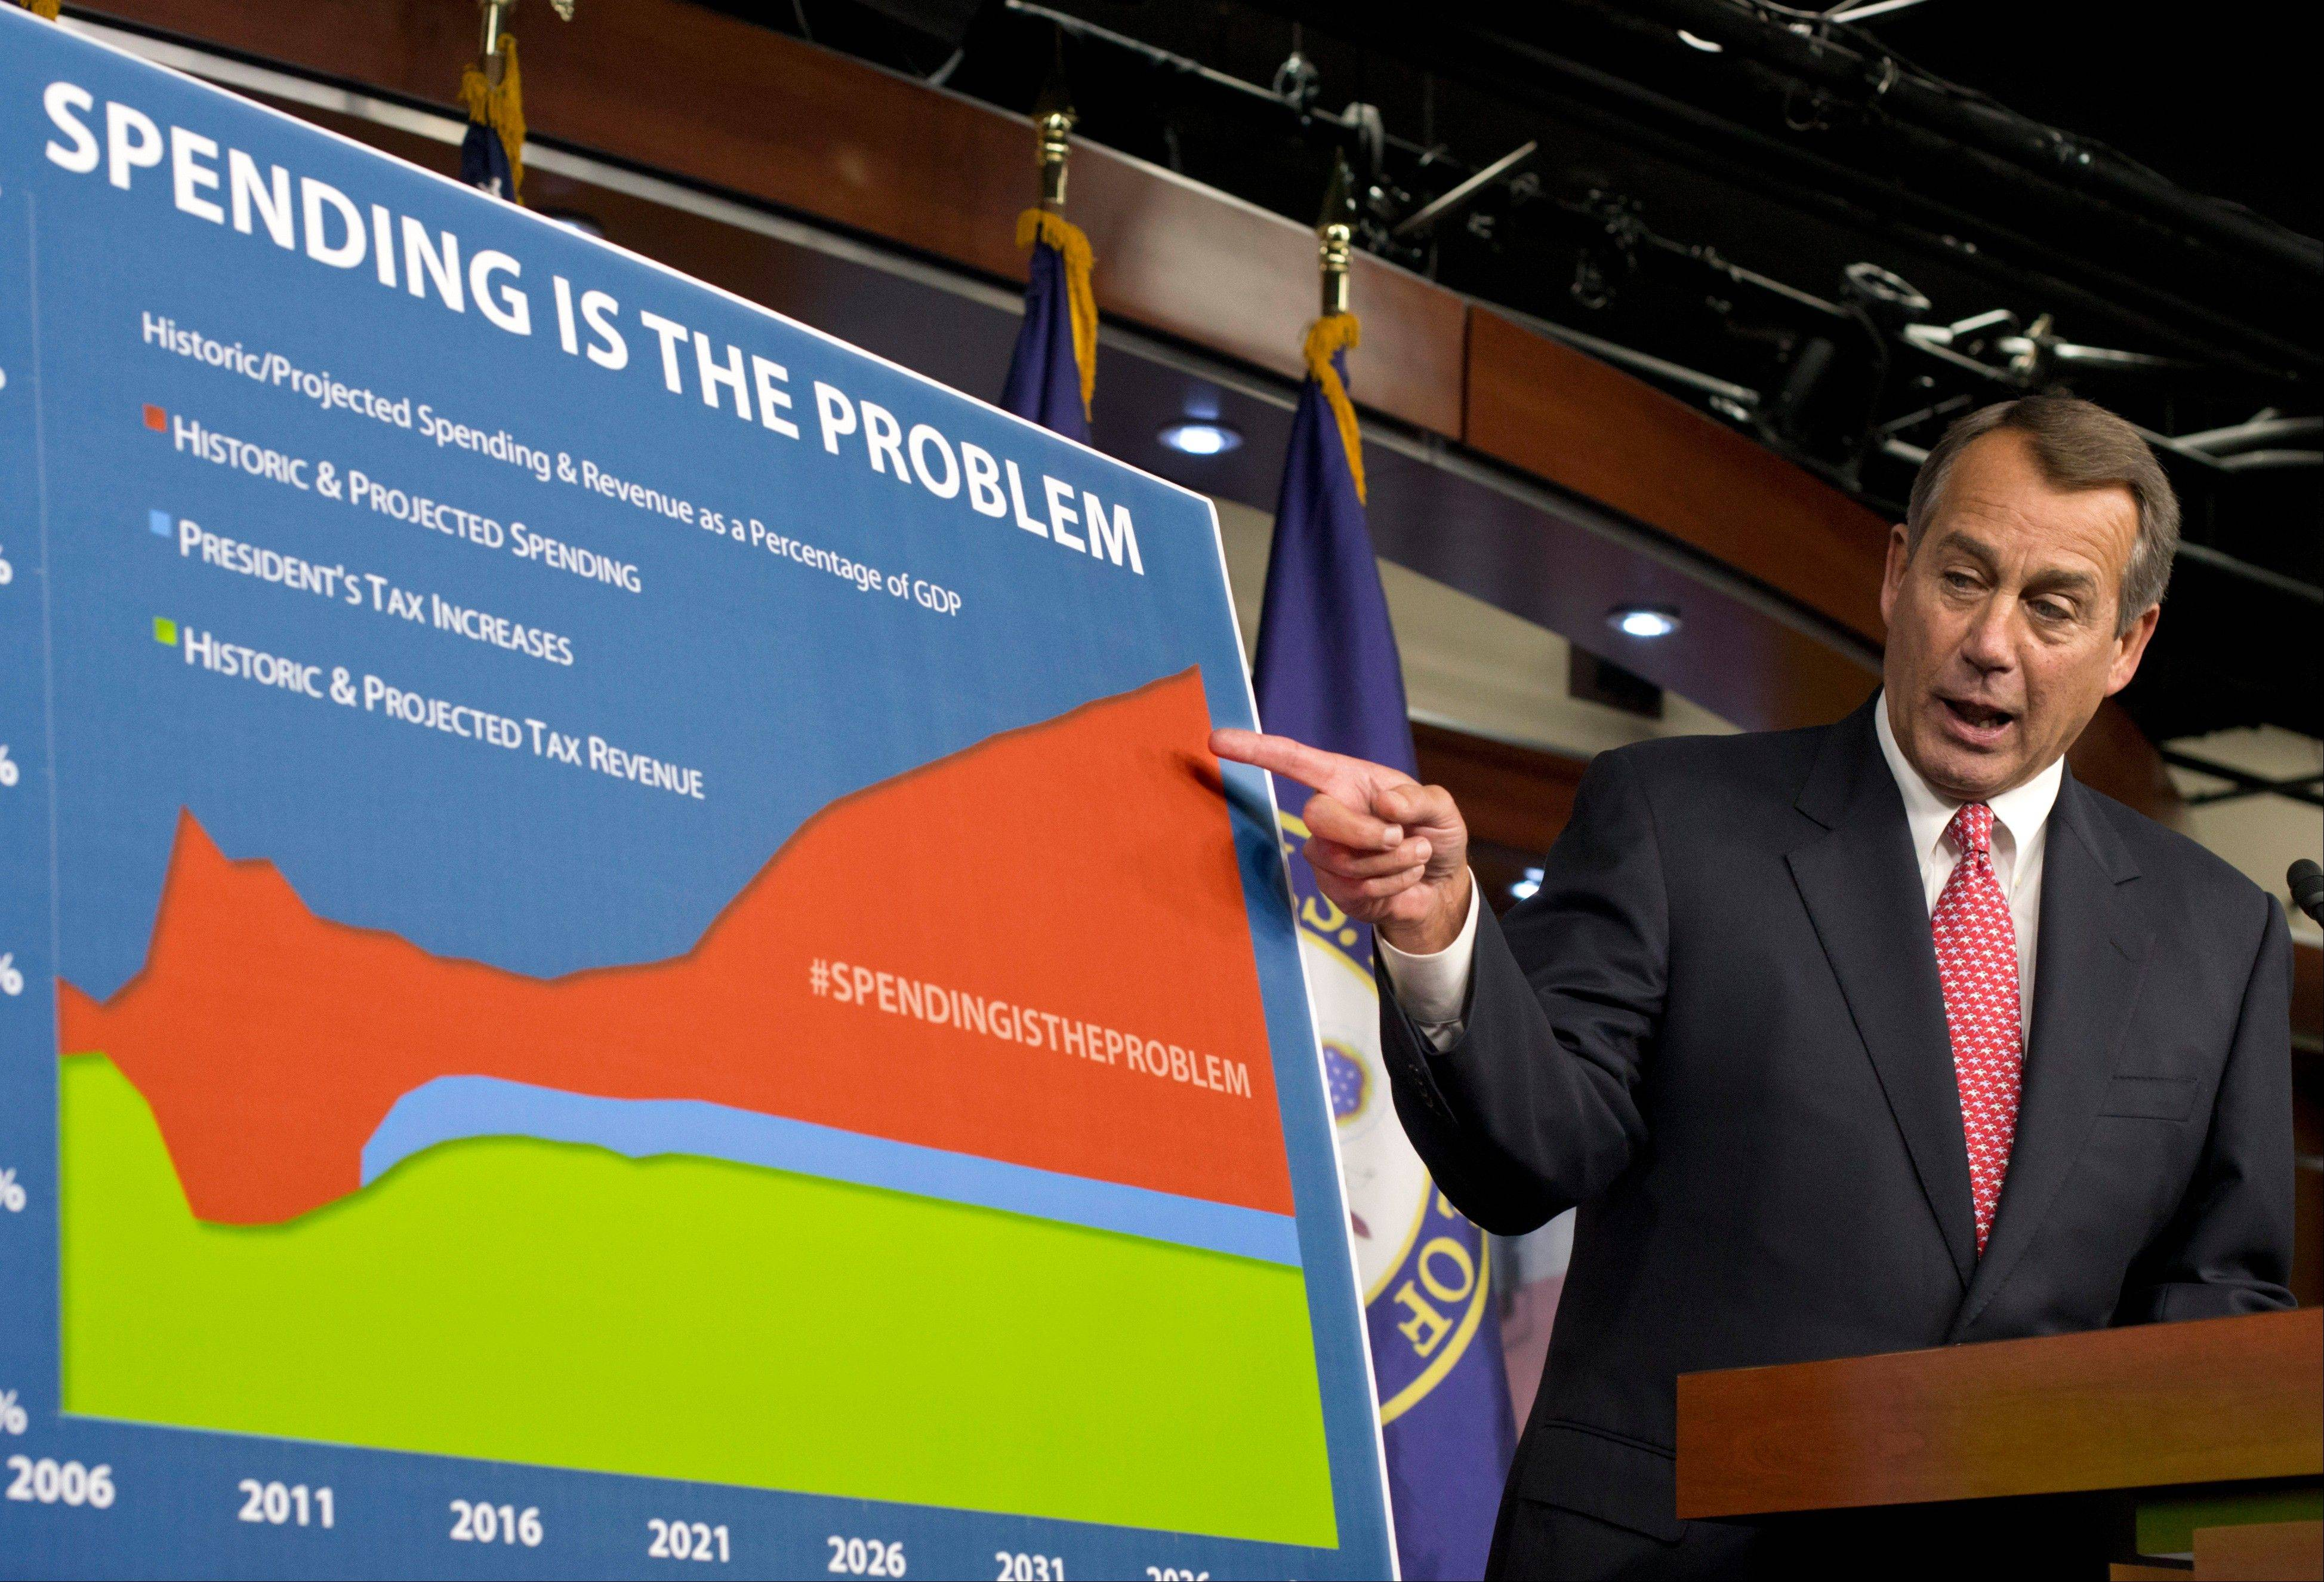 House Speaker John Boehner has offered to raise tax rates on household income above $1 million a year and lift the federal debt ceiling in exchange for containing entitlement program costs. While Obama wants higher rates for income above $250,000, Boehner's offer marked movement because he has opposed increased rates for any income level.